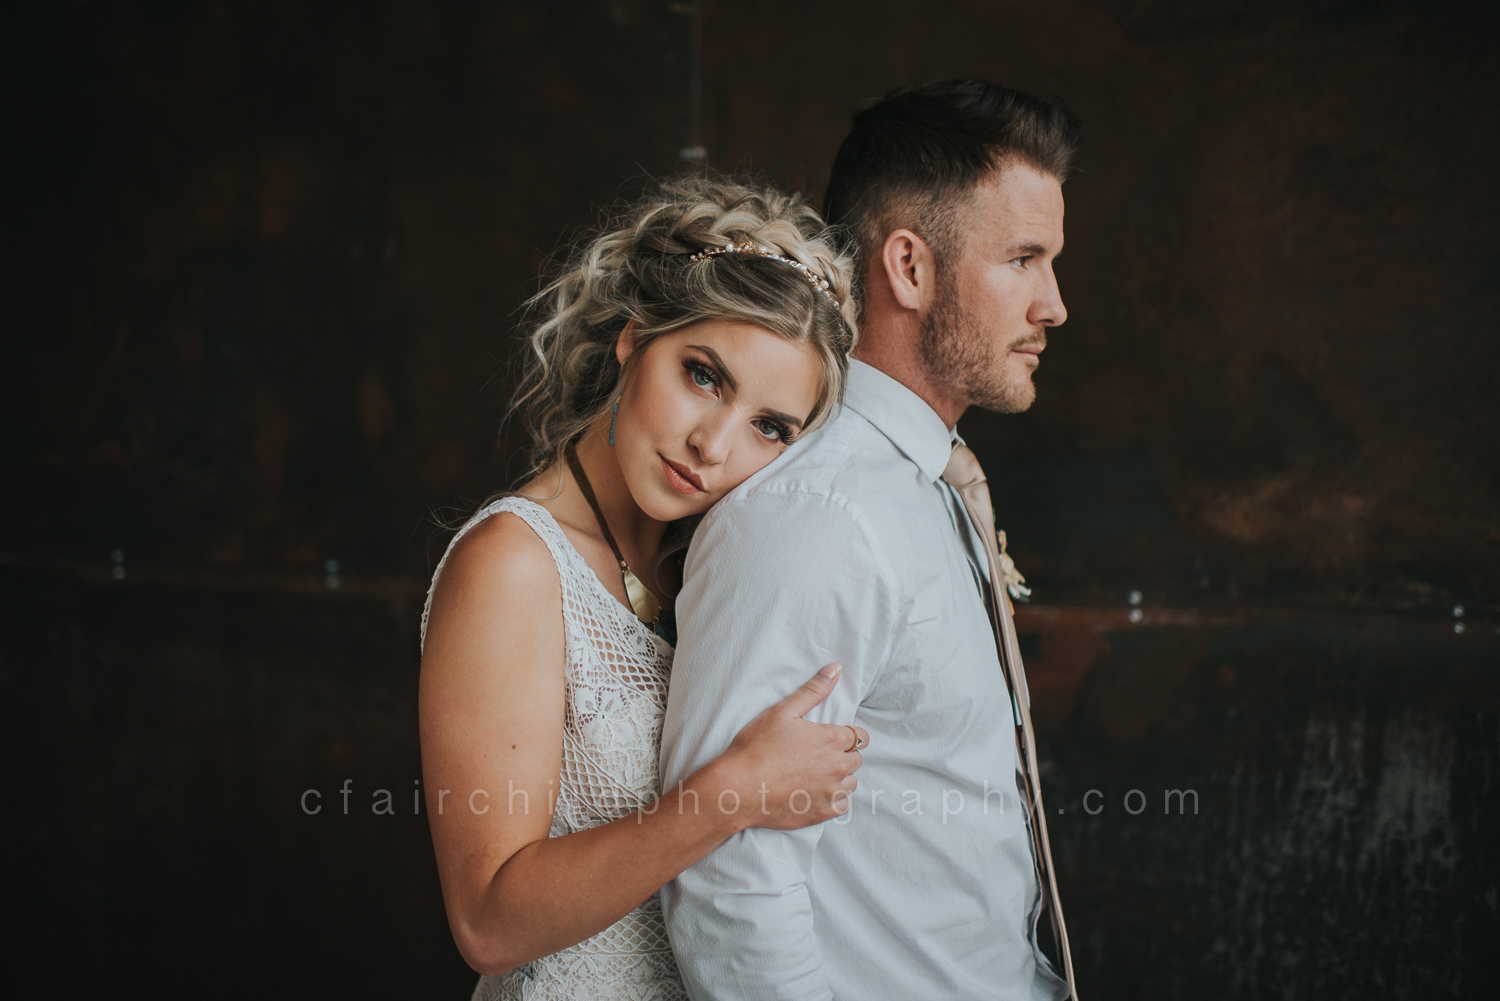 couples_photography_cfairchildphotos_ogden.jpg